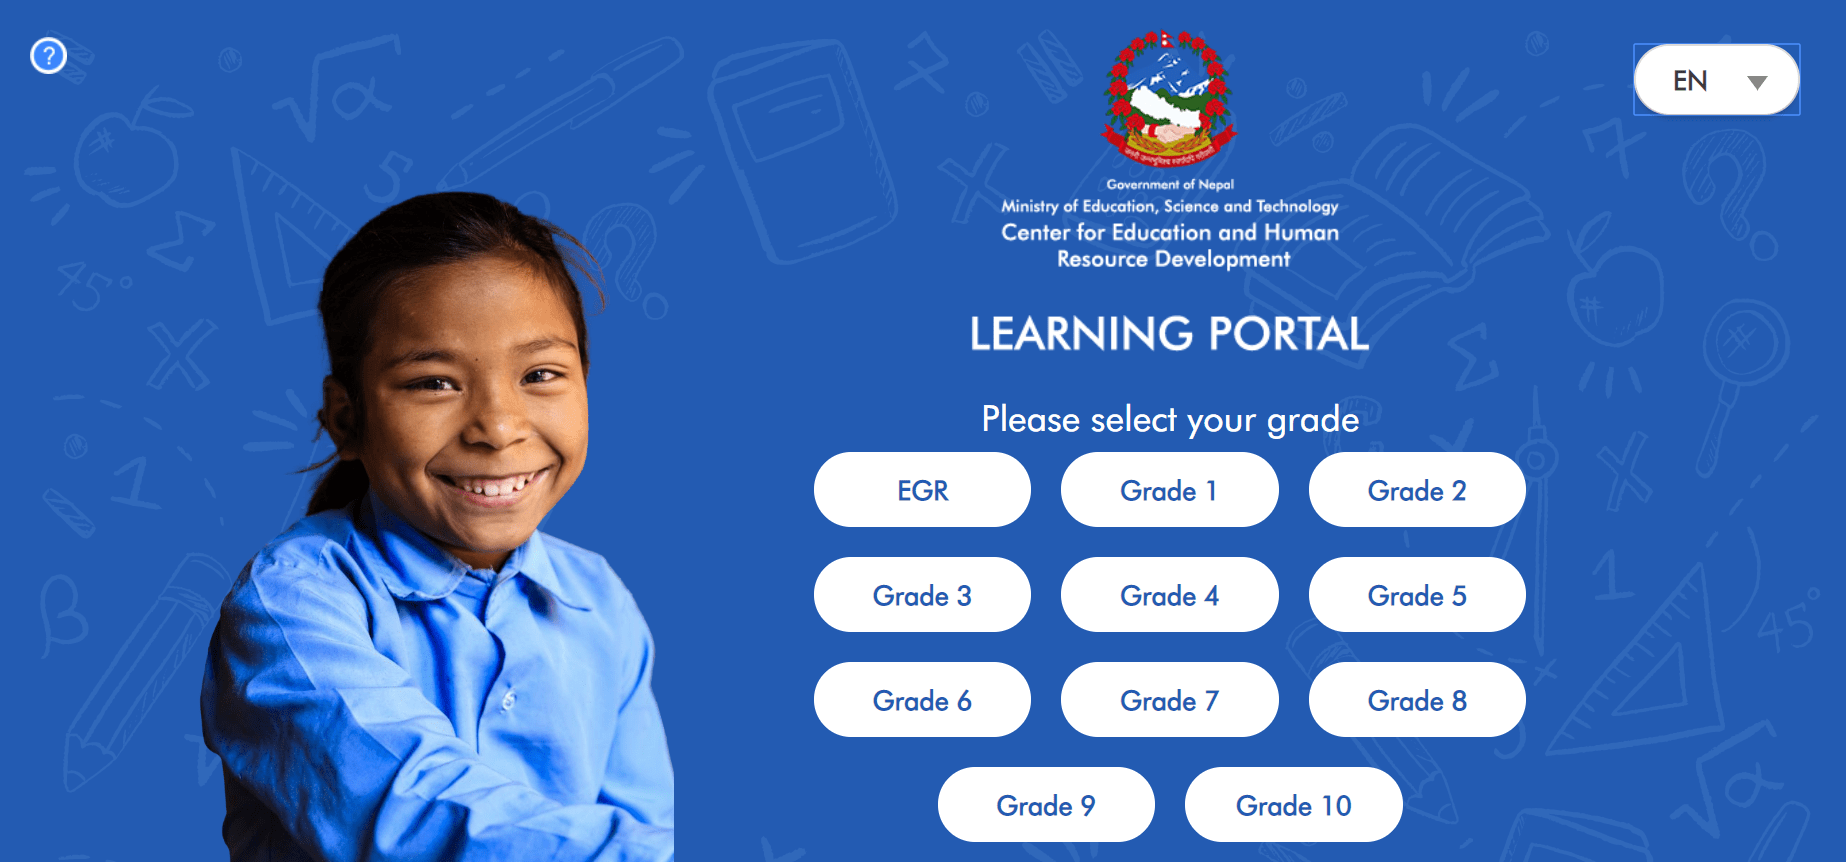 Government of Nepal launches online learning portal For class 1 to 10